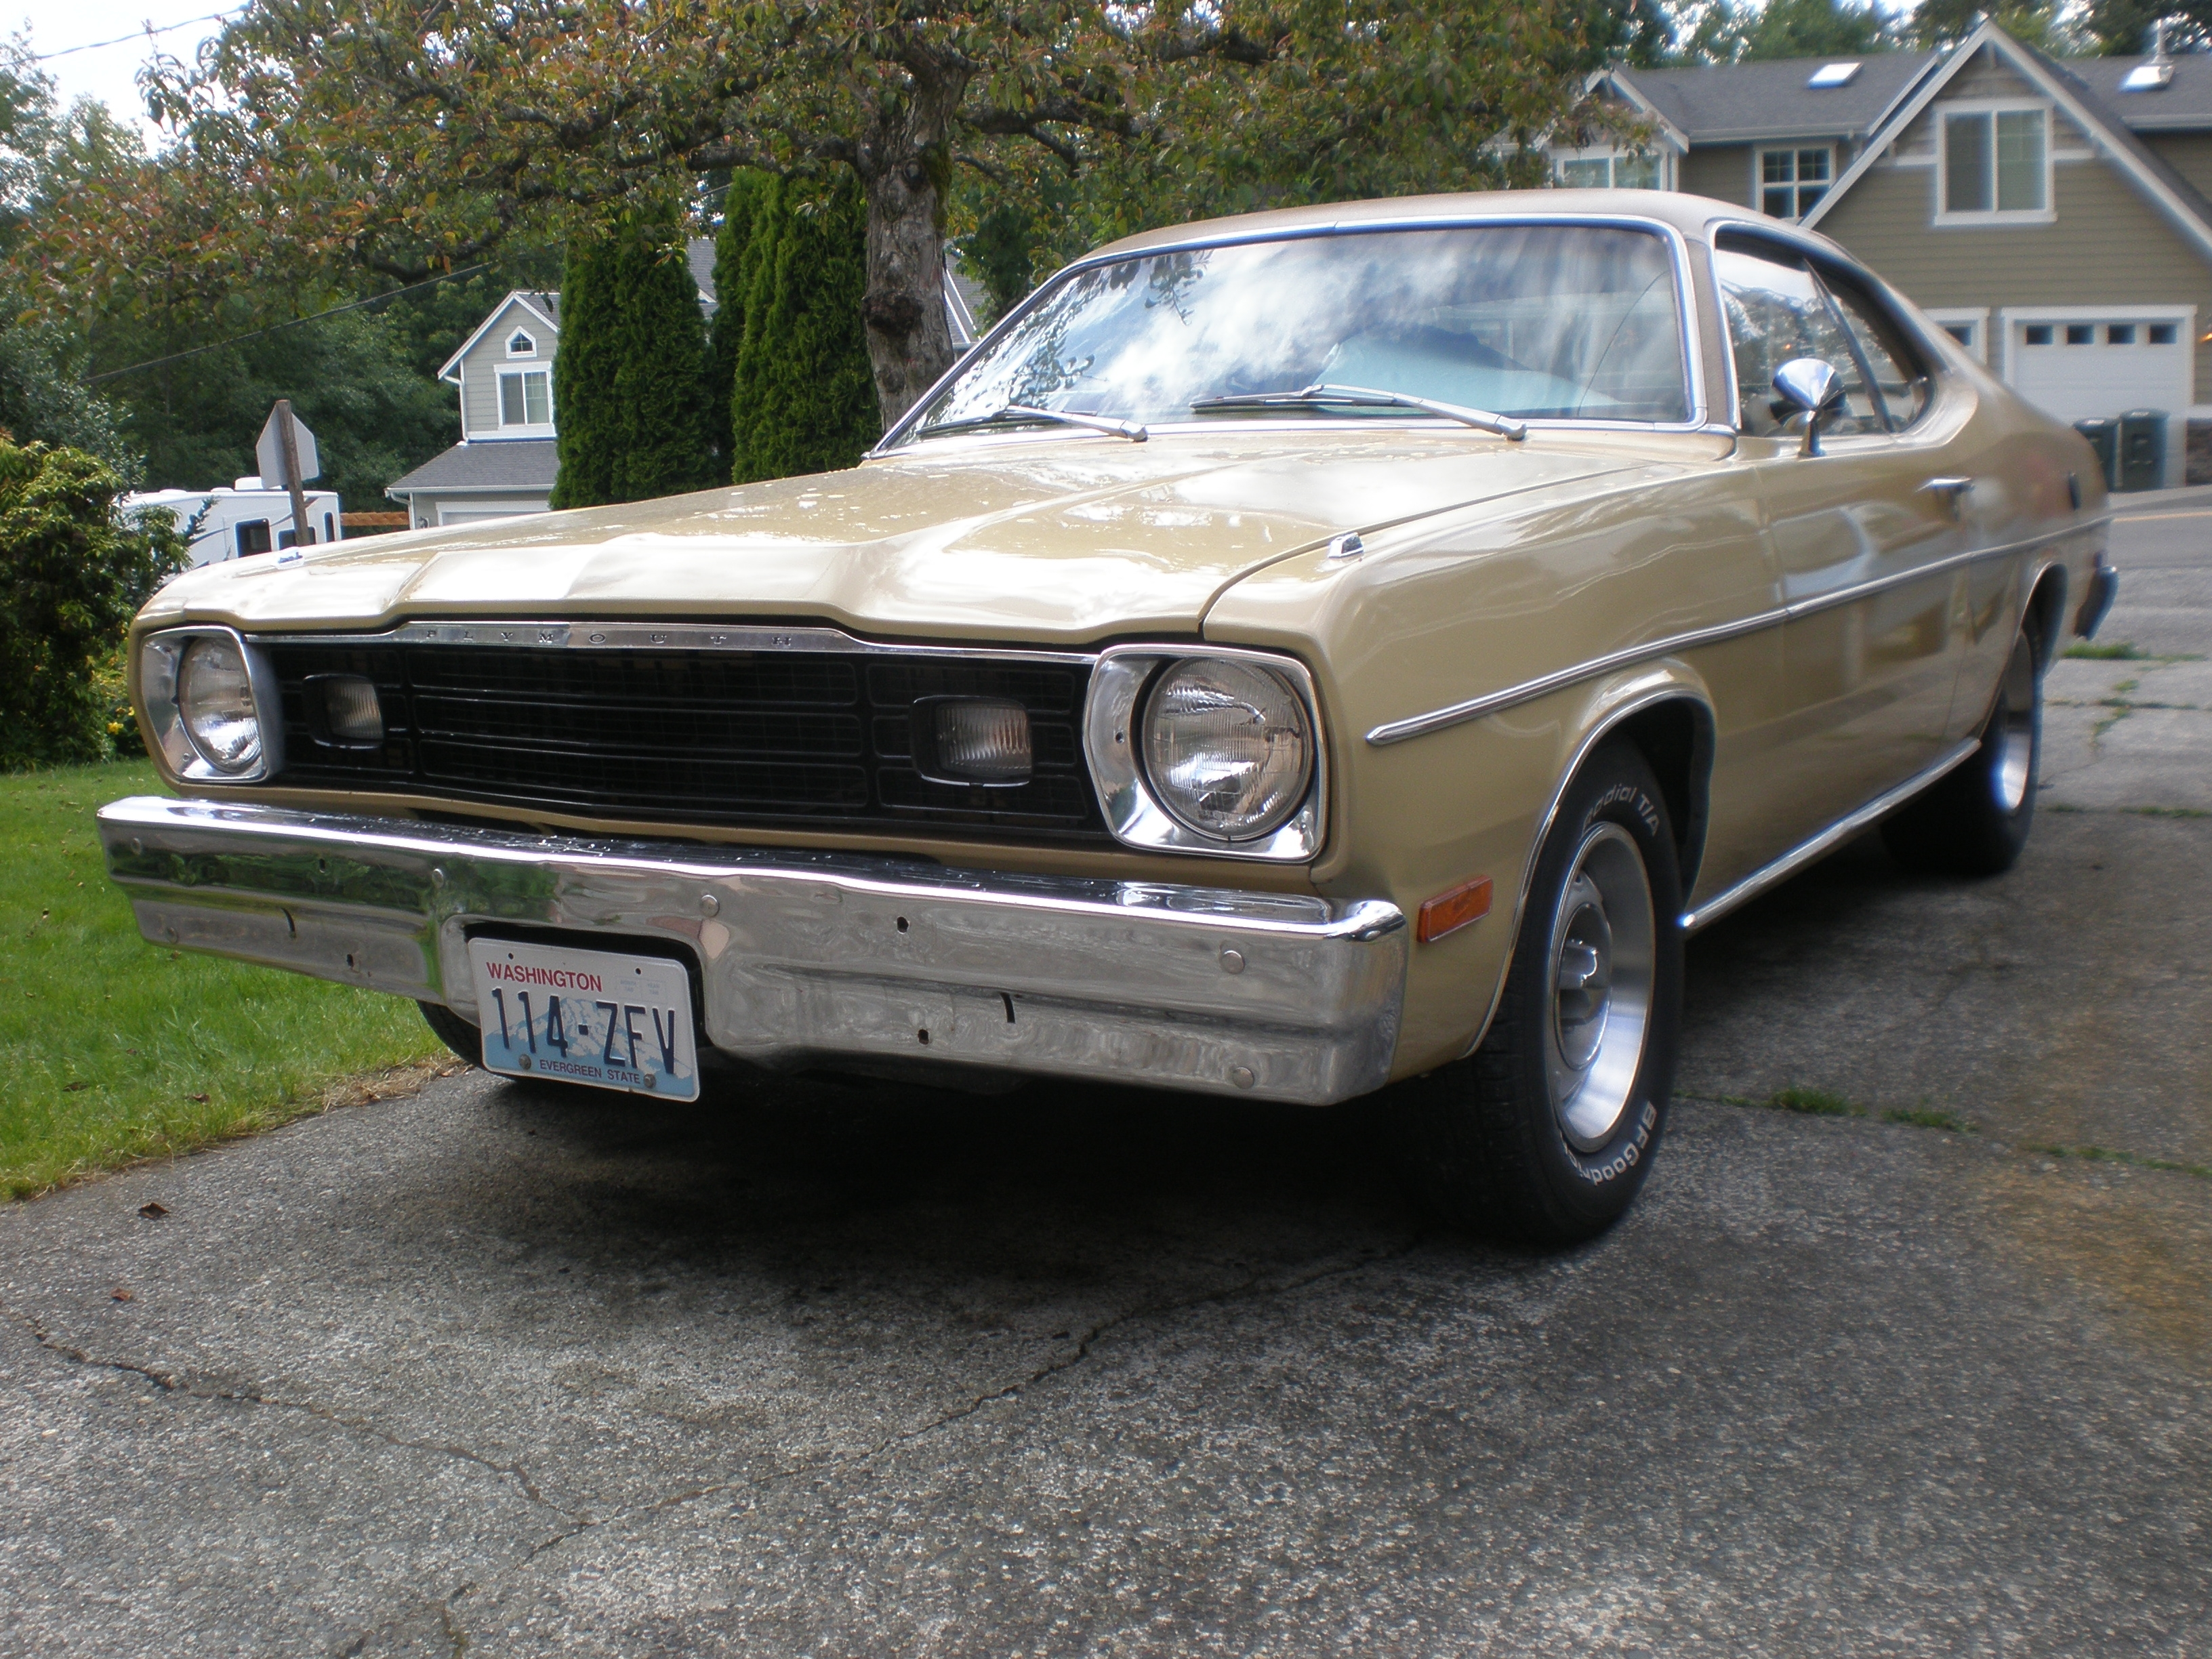 Land Rover Seattle >> Dustergirl75 1975 Plymouth Duster Specs, Photos ...